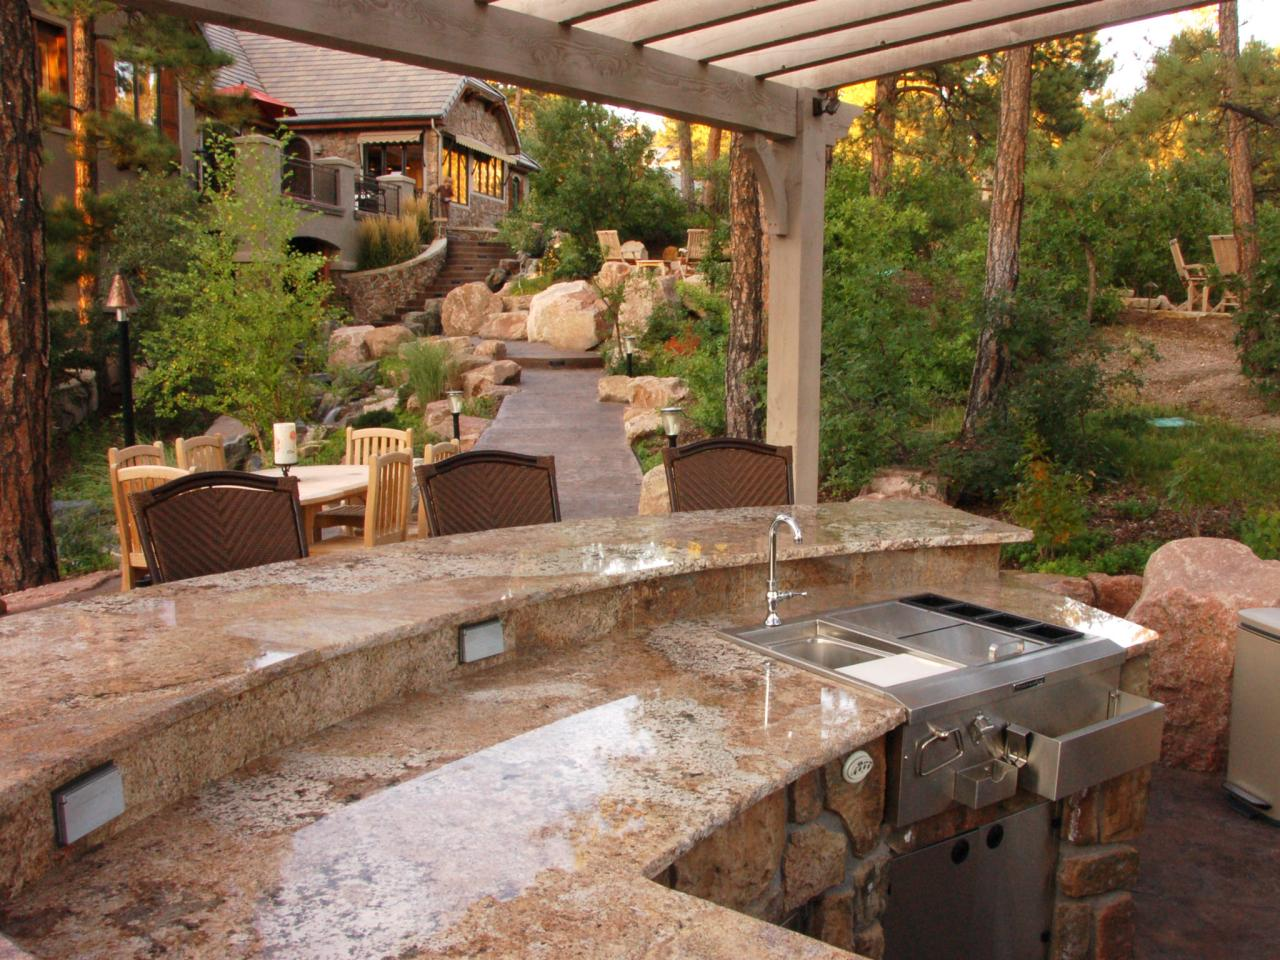 Genial Outdoor Kitchen Design Ideas